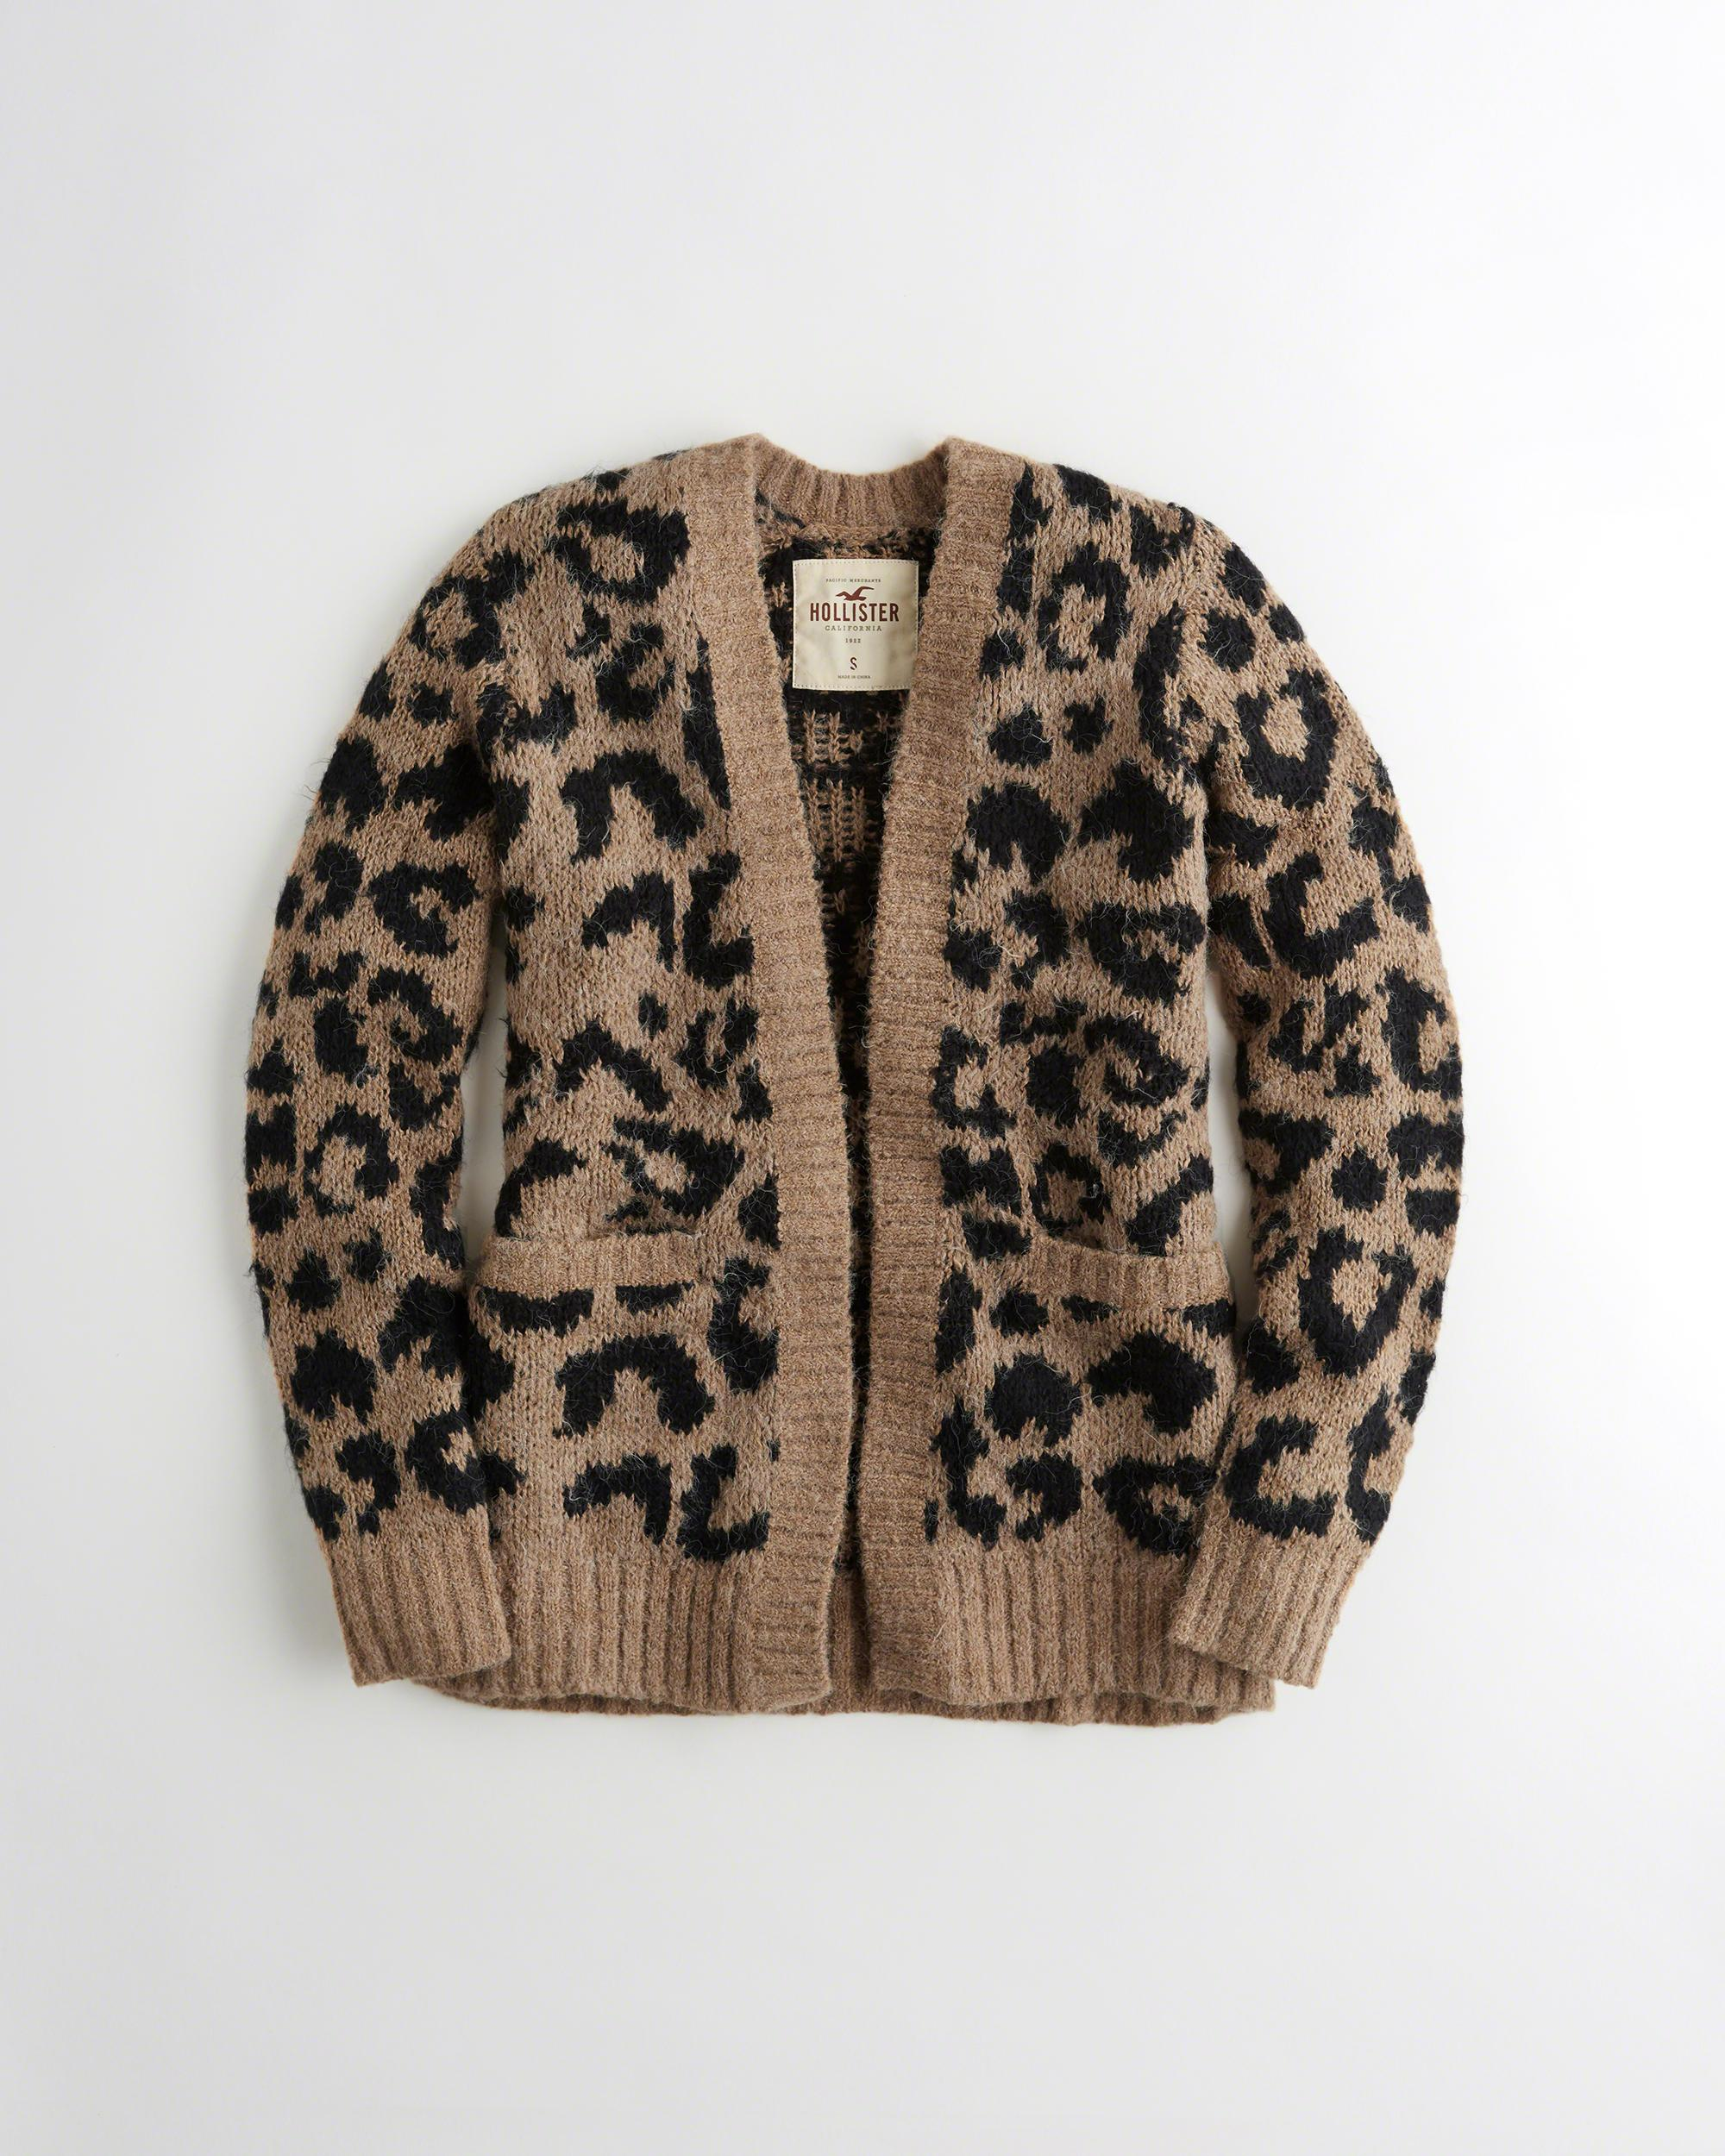 Hollister Leopard Fuzzy Knit Cardigan - Save 52% | Lyst